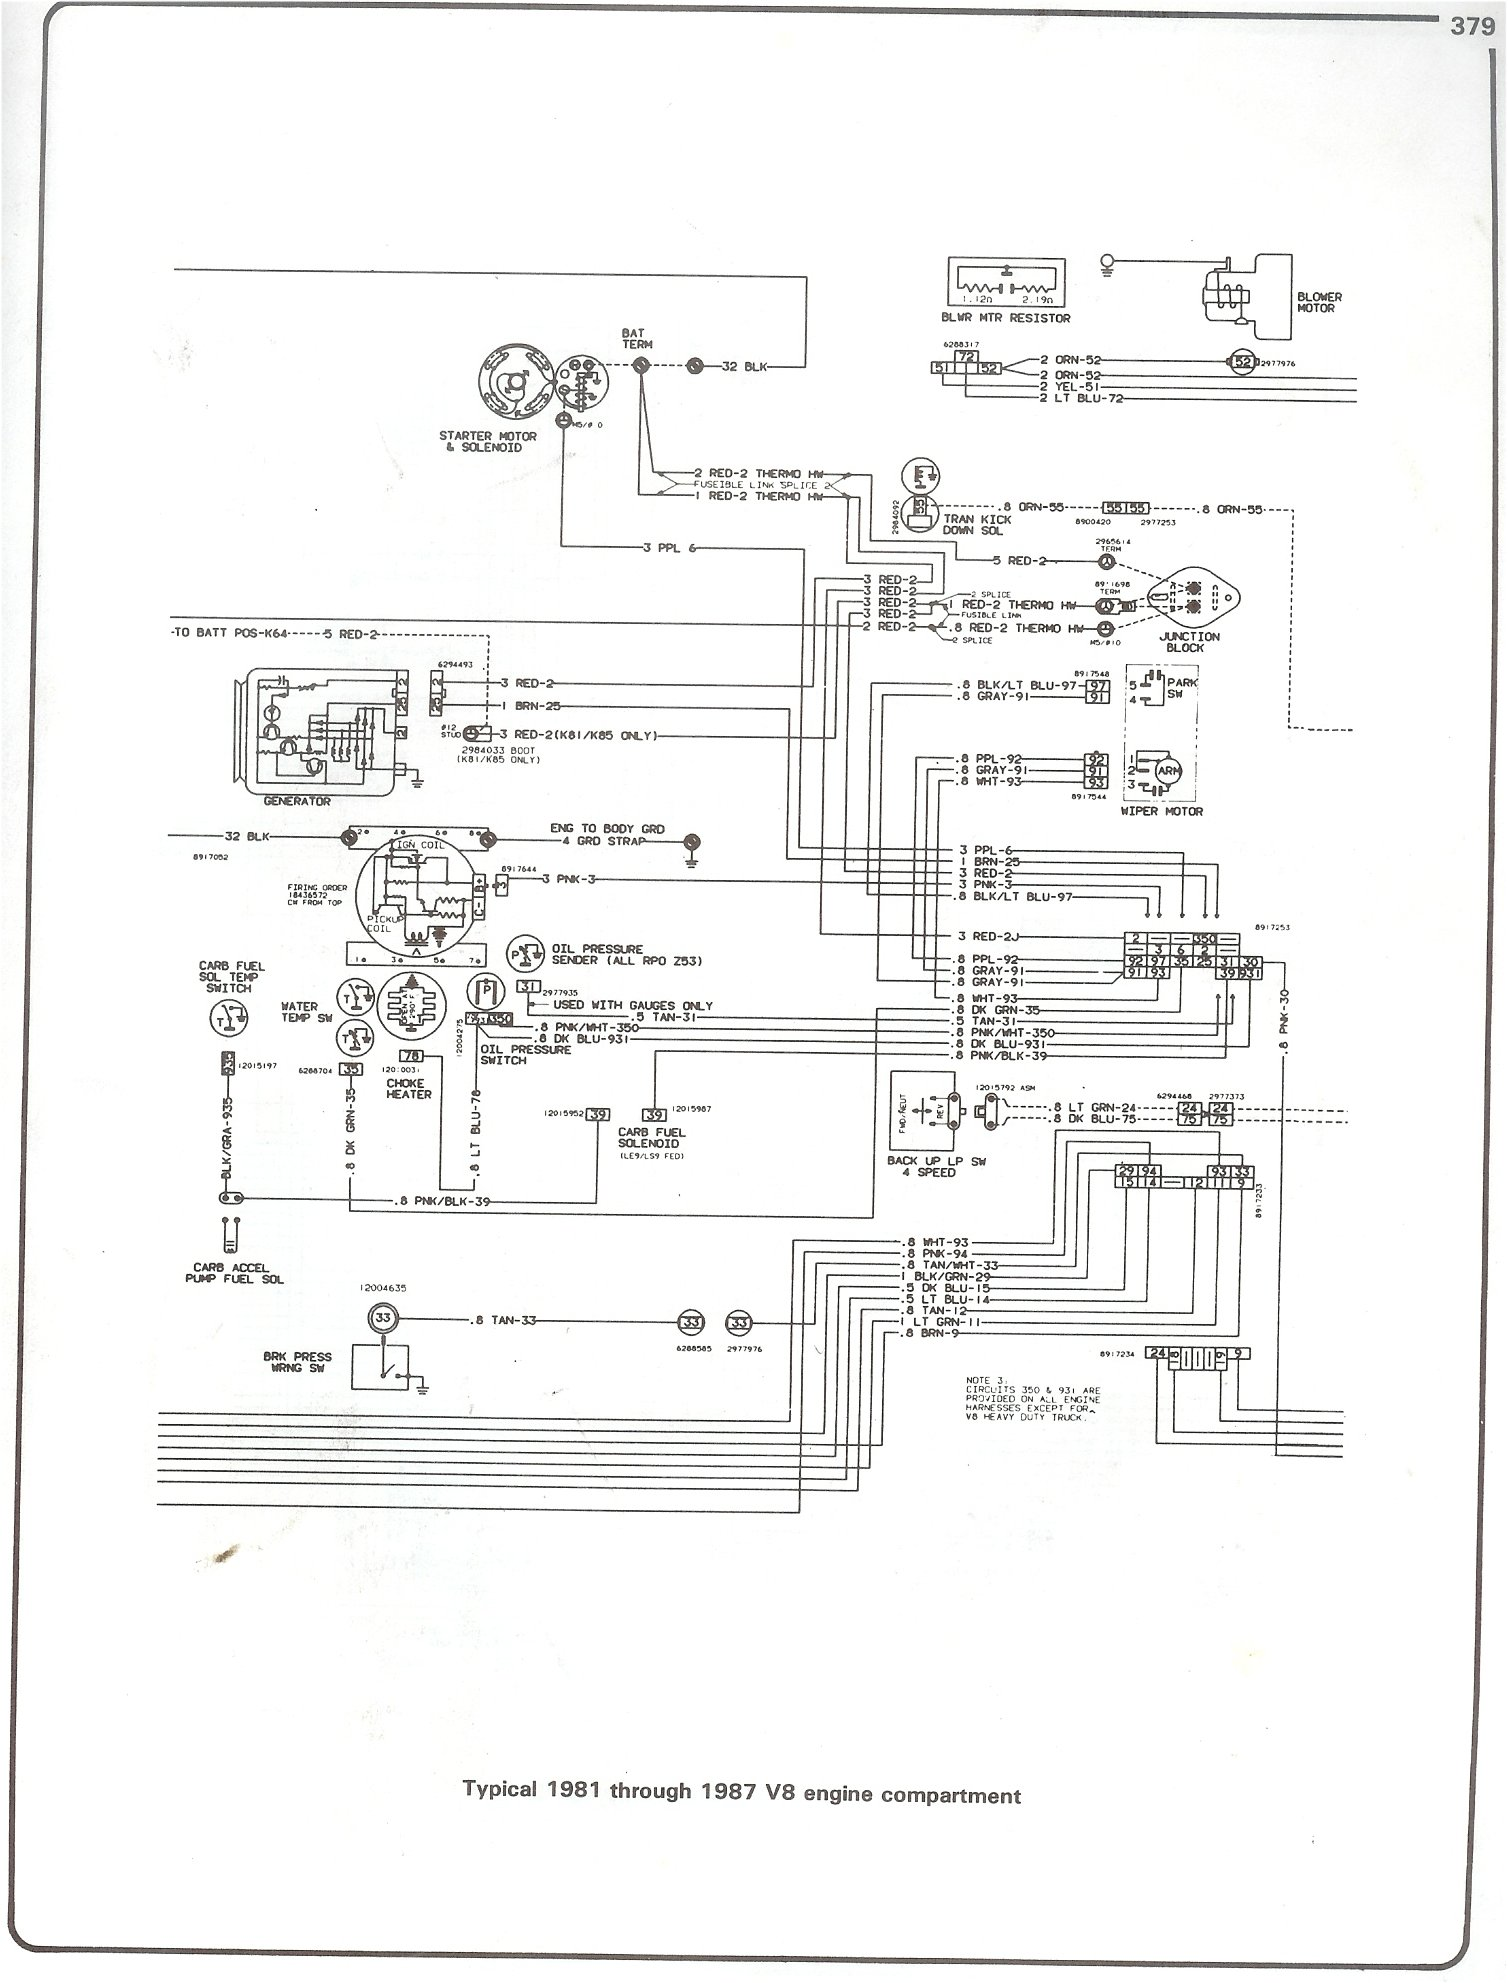 1986 chevy c10 wiring diagram schematics wiring diagram rh sylviaexpress  com 1978 GMC Truck Wiring Diagram